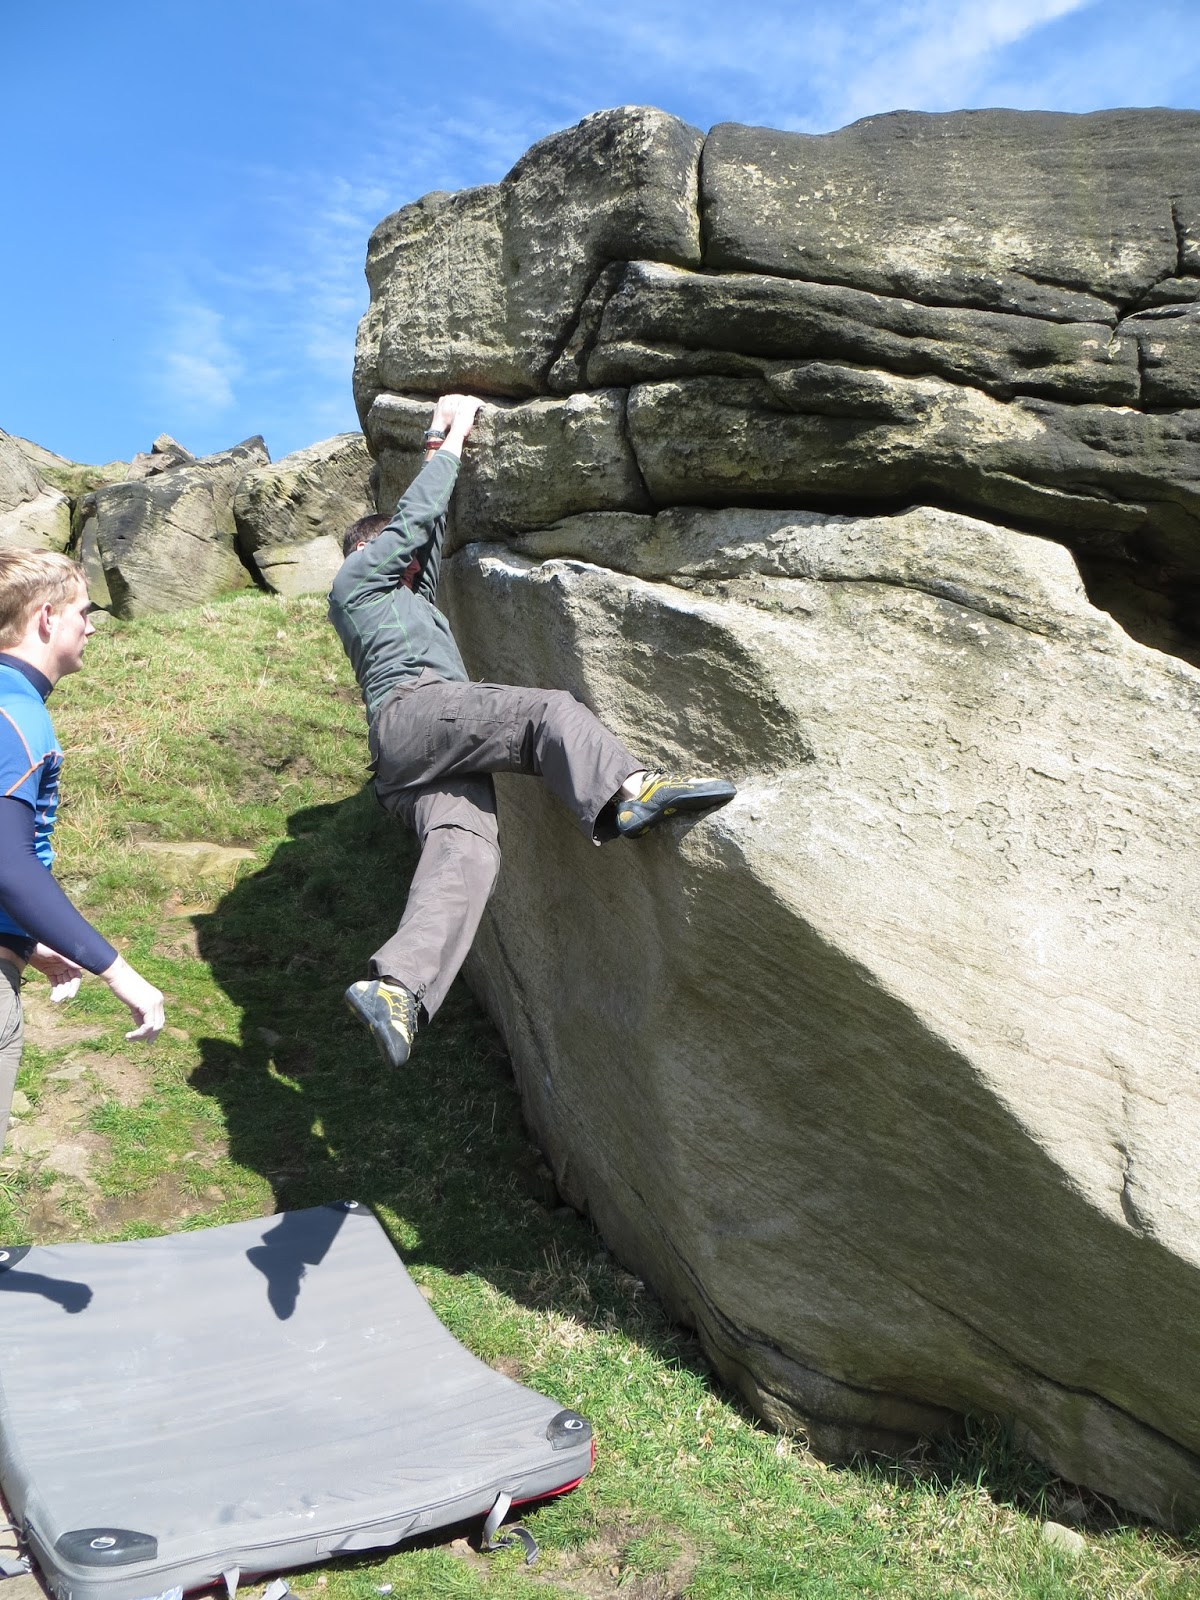 Almscliff, almsliffe, crag, cragg, yorkshire, grit, trad, climb, climbing, bouldering, great outdoors, mountain, hill, landscape, freedom, sun, spring, england, english countryside, uk, Britain, views, adventure, lead climb, second, fluted columns,